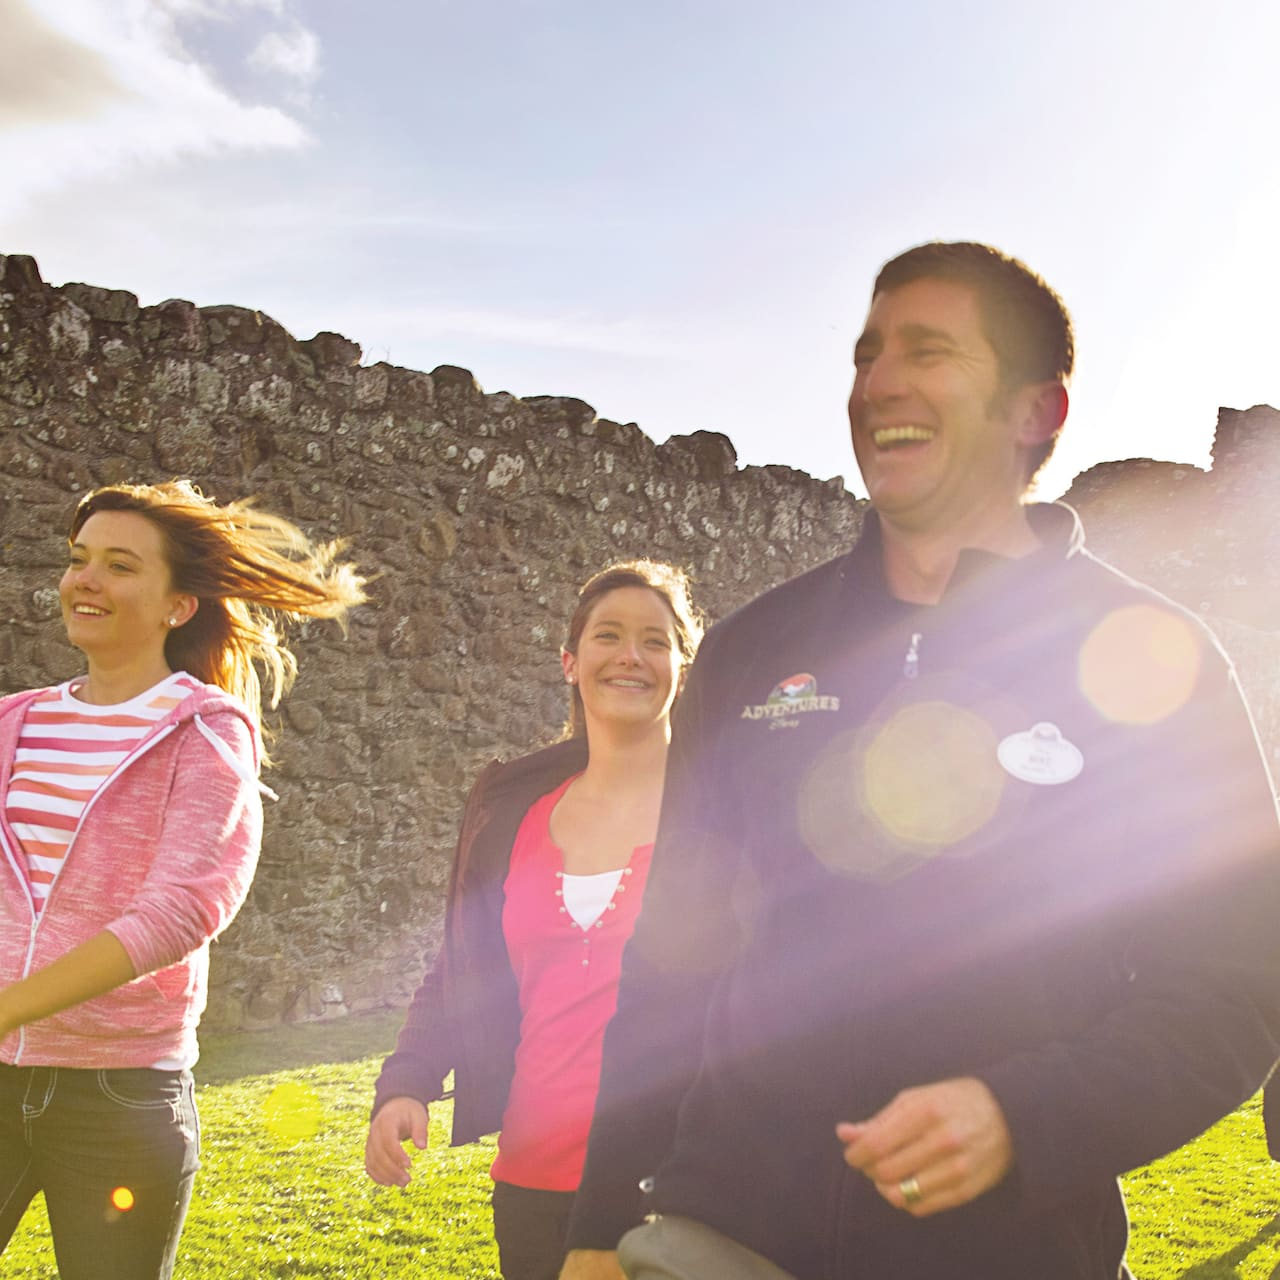 A family of 5 with girls in their early teens walks alongside the wall of an ancient Scottish ruin